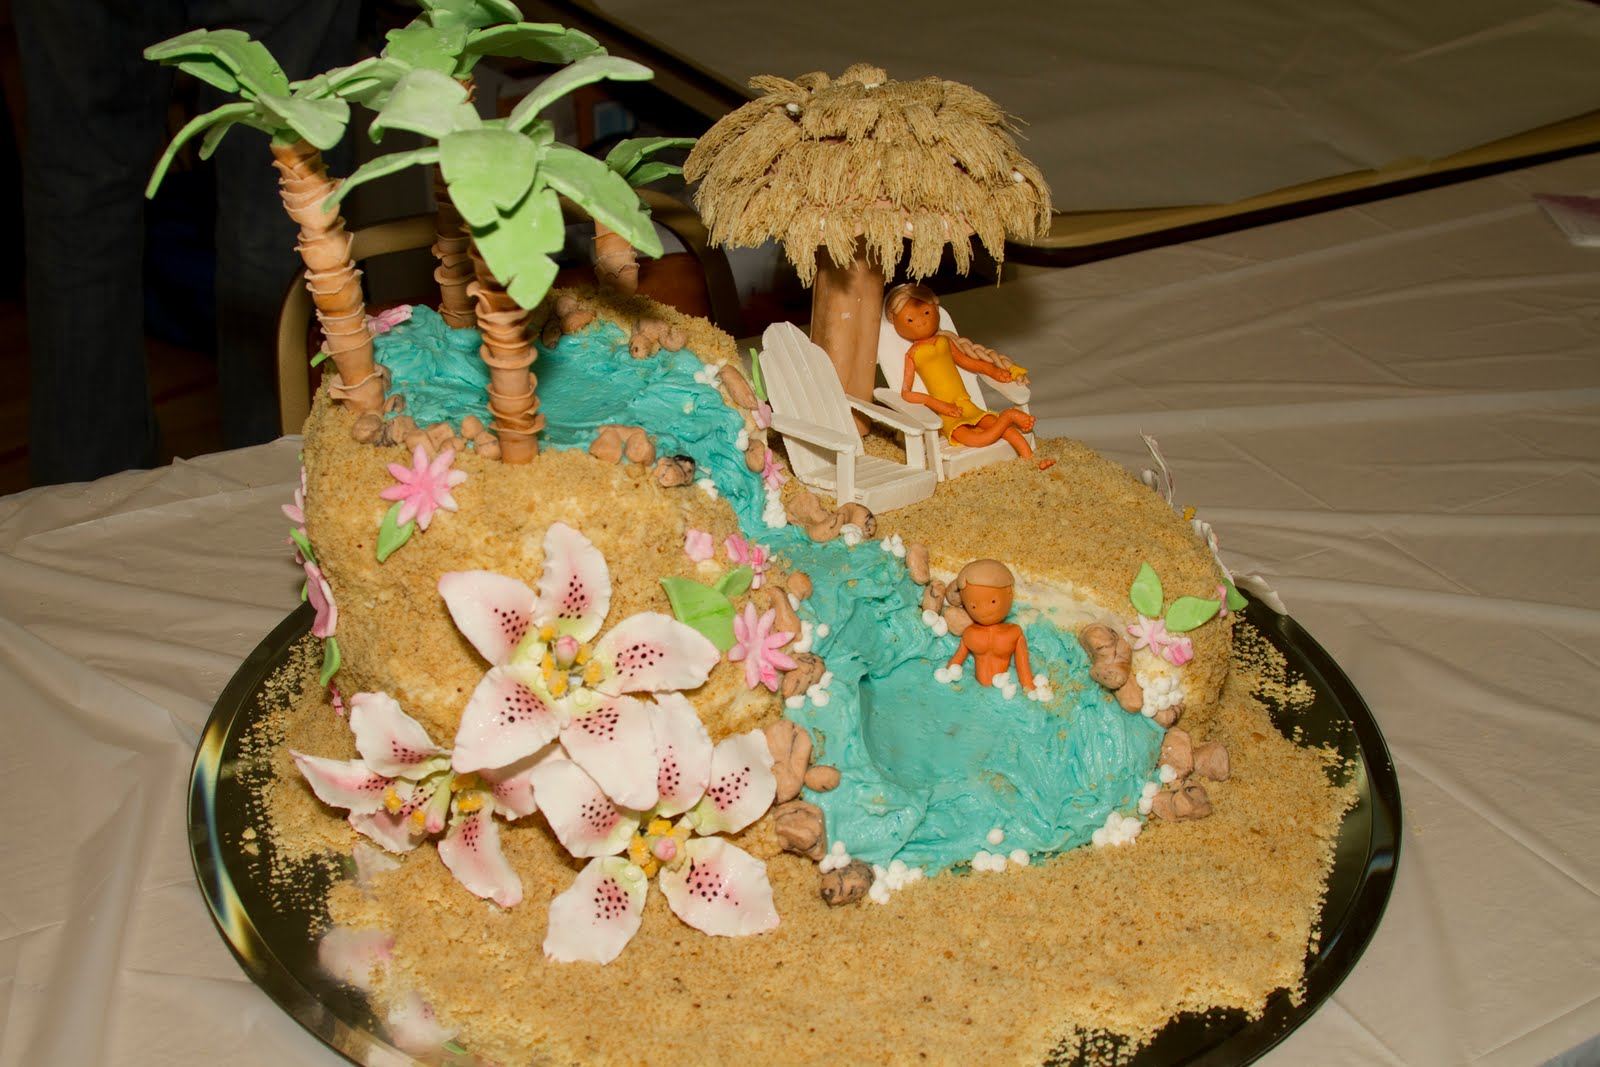 All Tiered Up: Cake Decorating Contest Cake